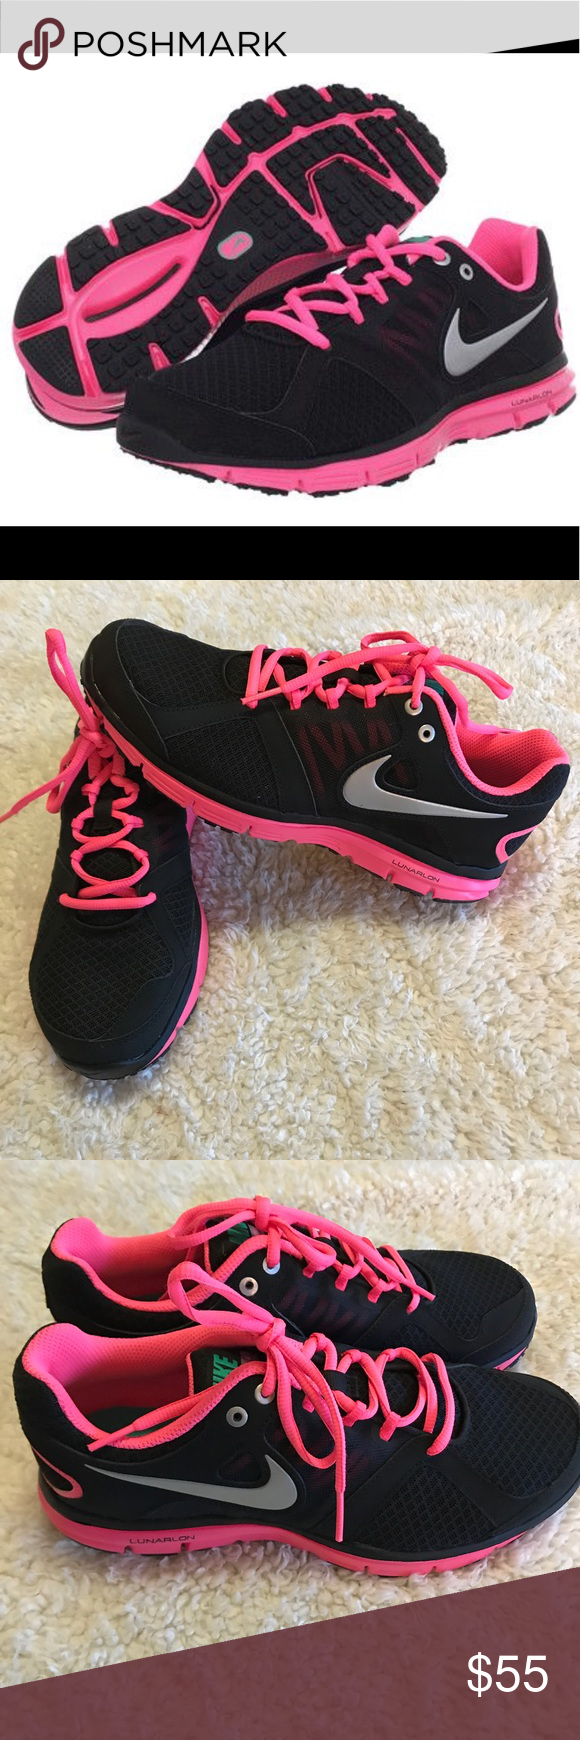 Shop Women's Nike Black Pink size 8 Athletic Shoes at a discounted price at  Poshmark. Super cute and girly.